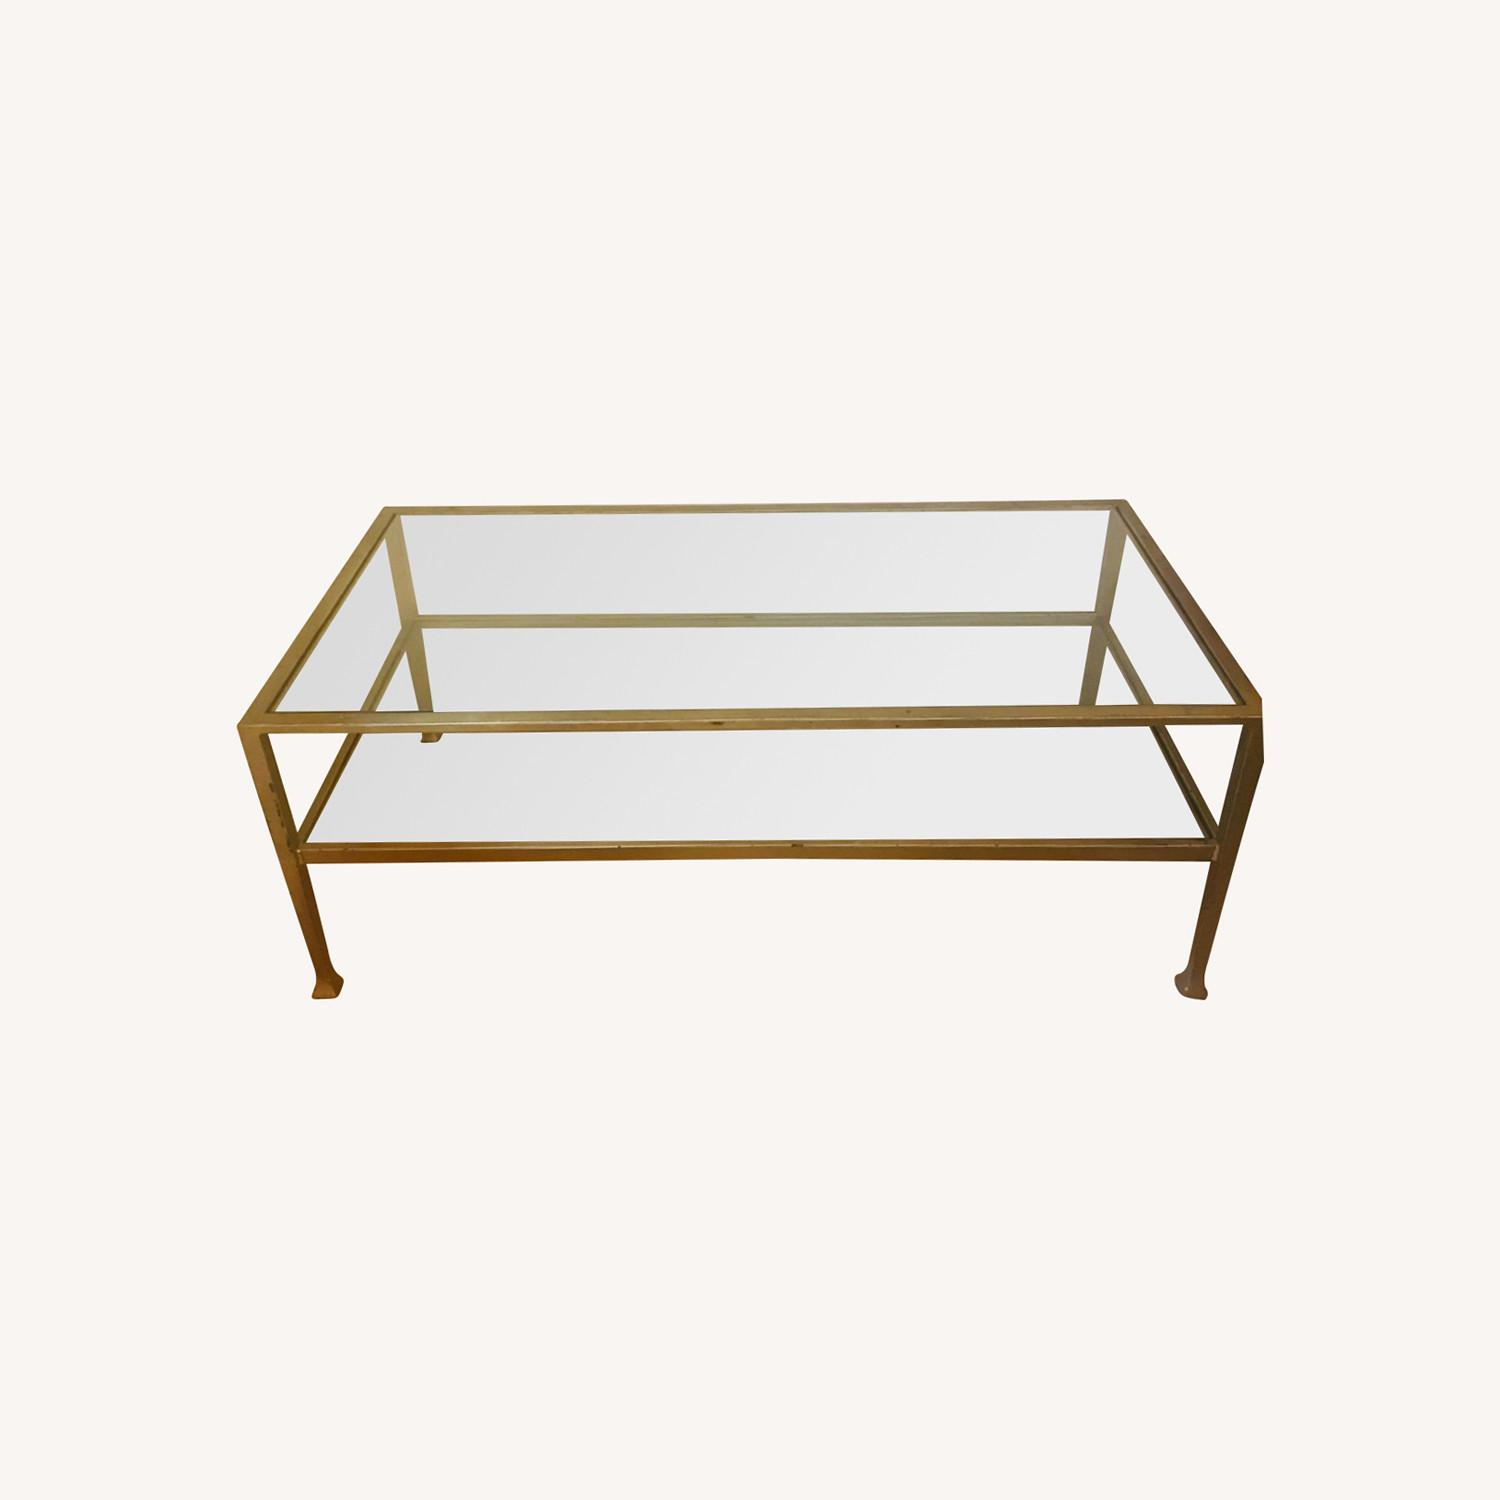 Crate & Barrel Antique Gold Glass and Metal Table - image-0